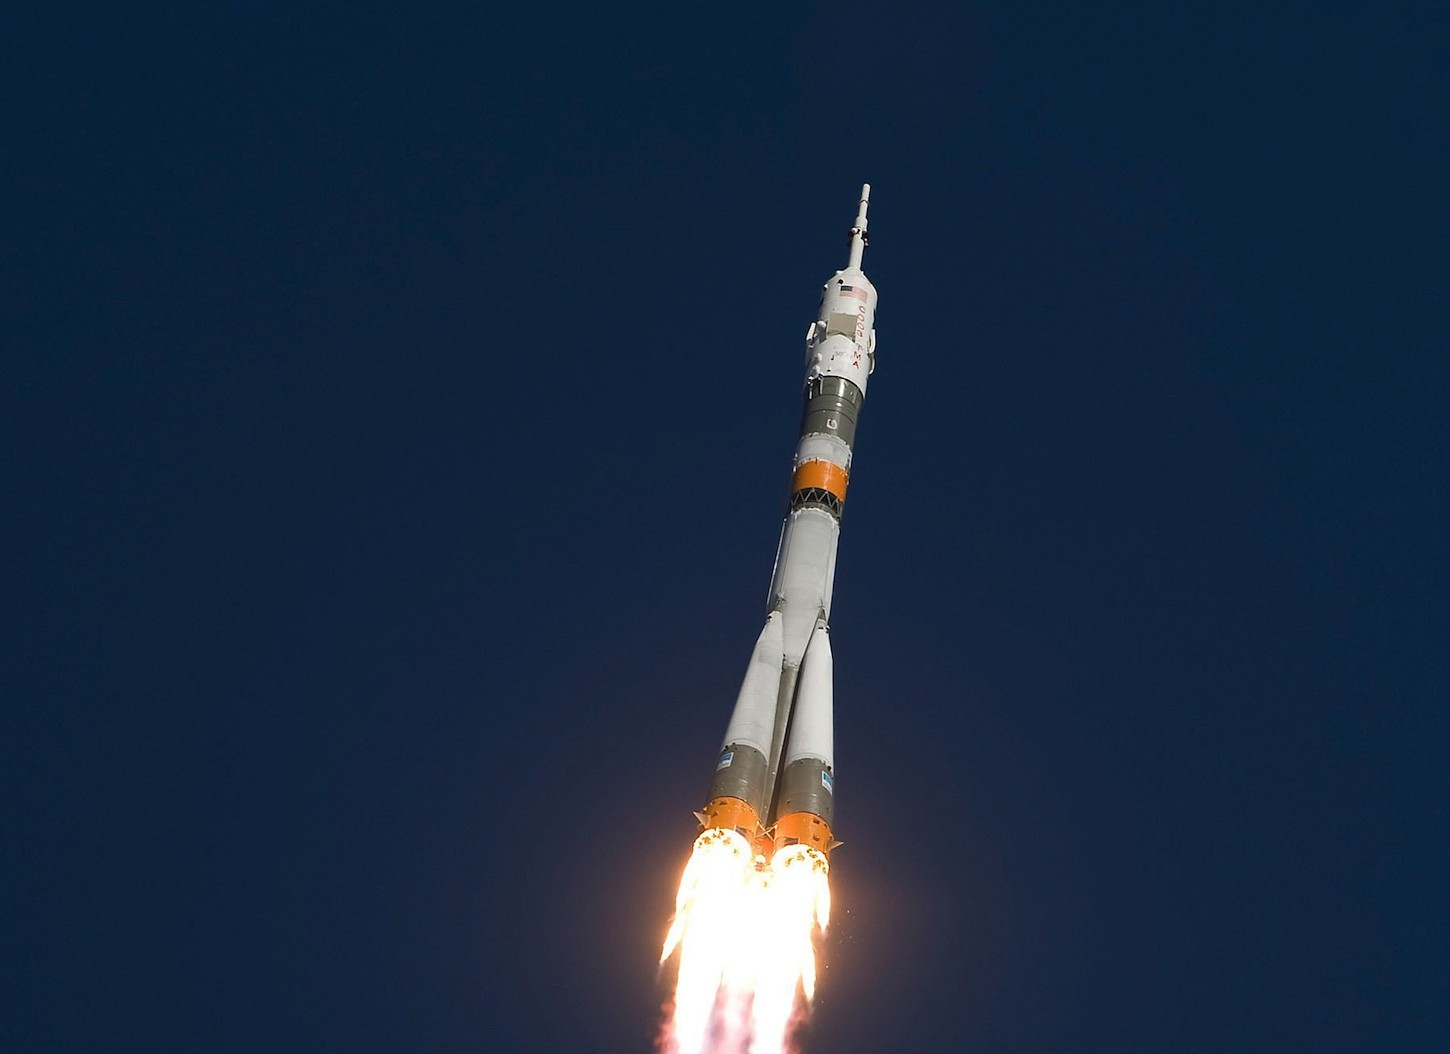 Soyuz at launch